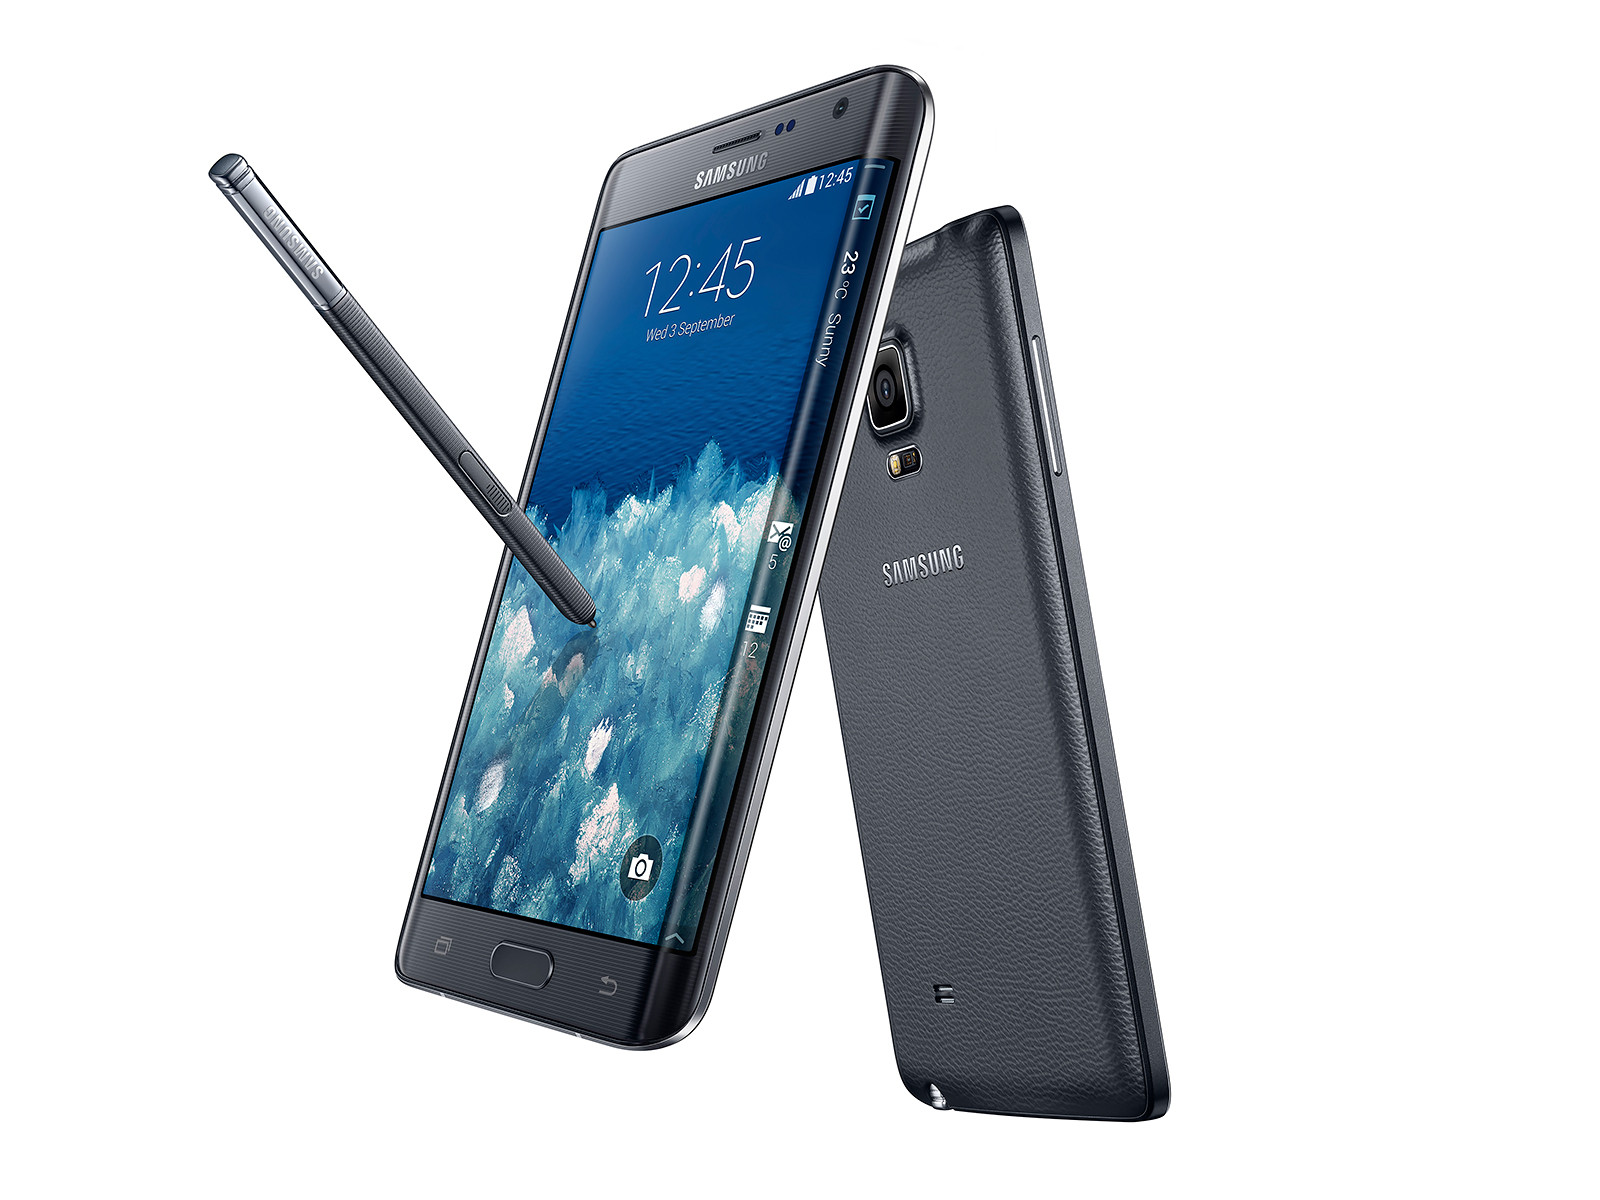 1409753001_a-phone-with-an-edge-samsung-galaxy-note-edge-with-curved-screen-is-official-21.jpg